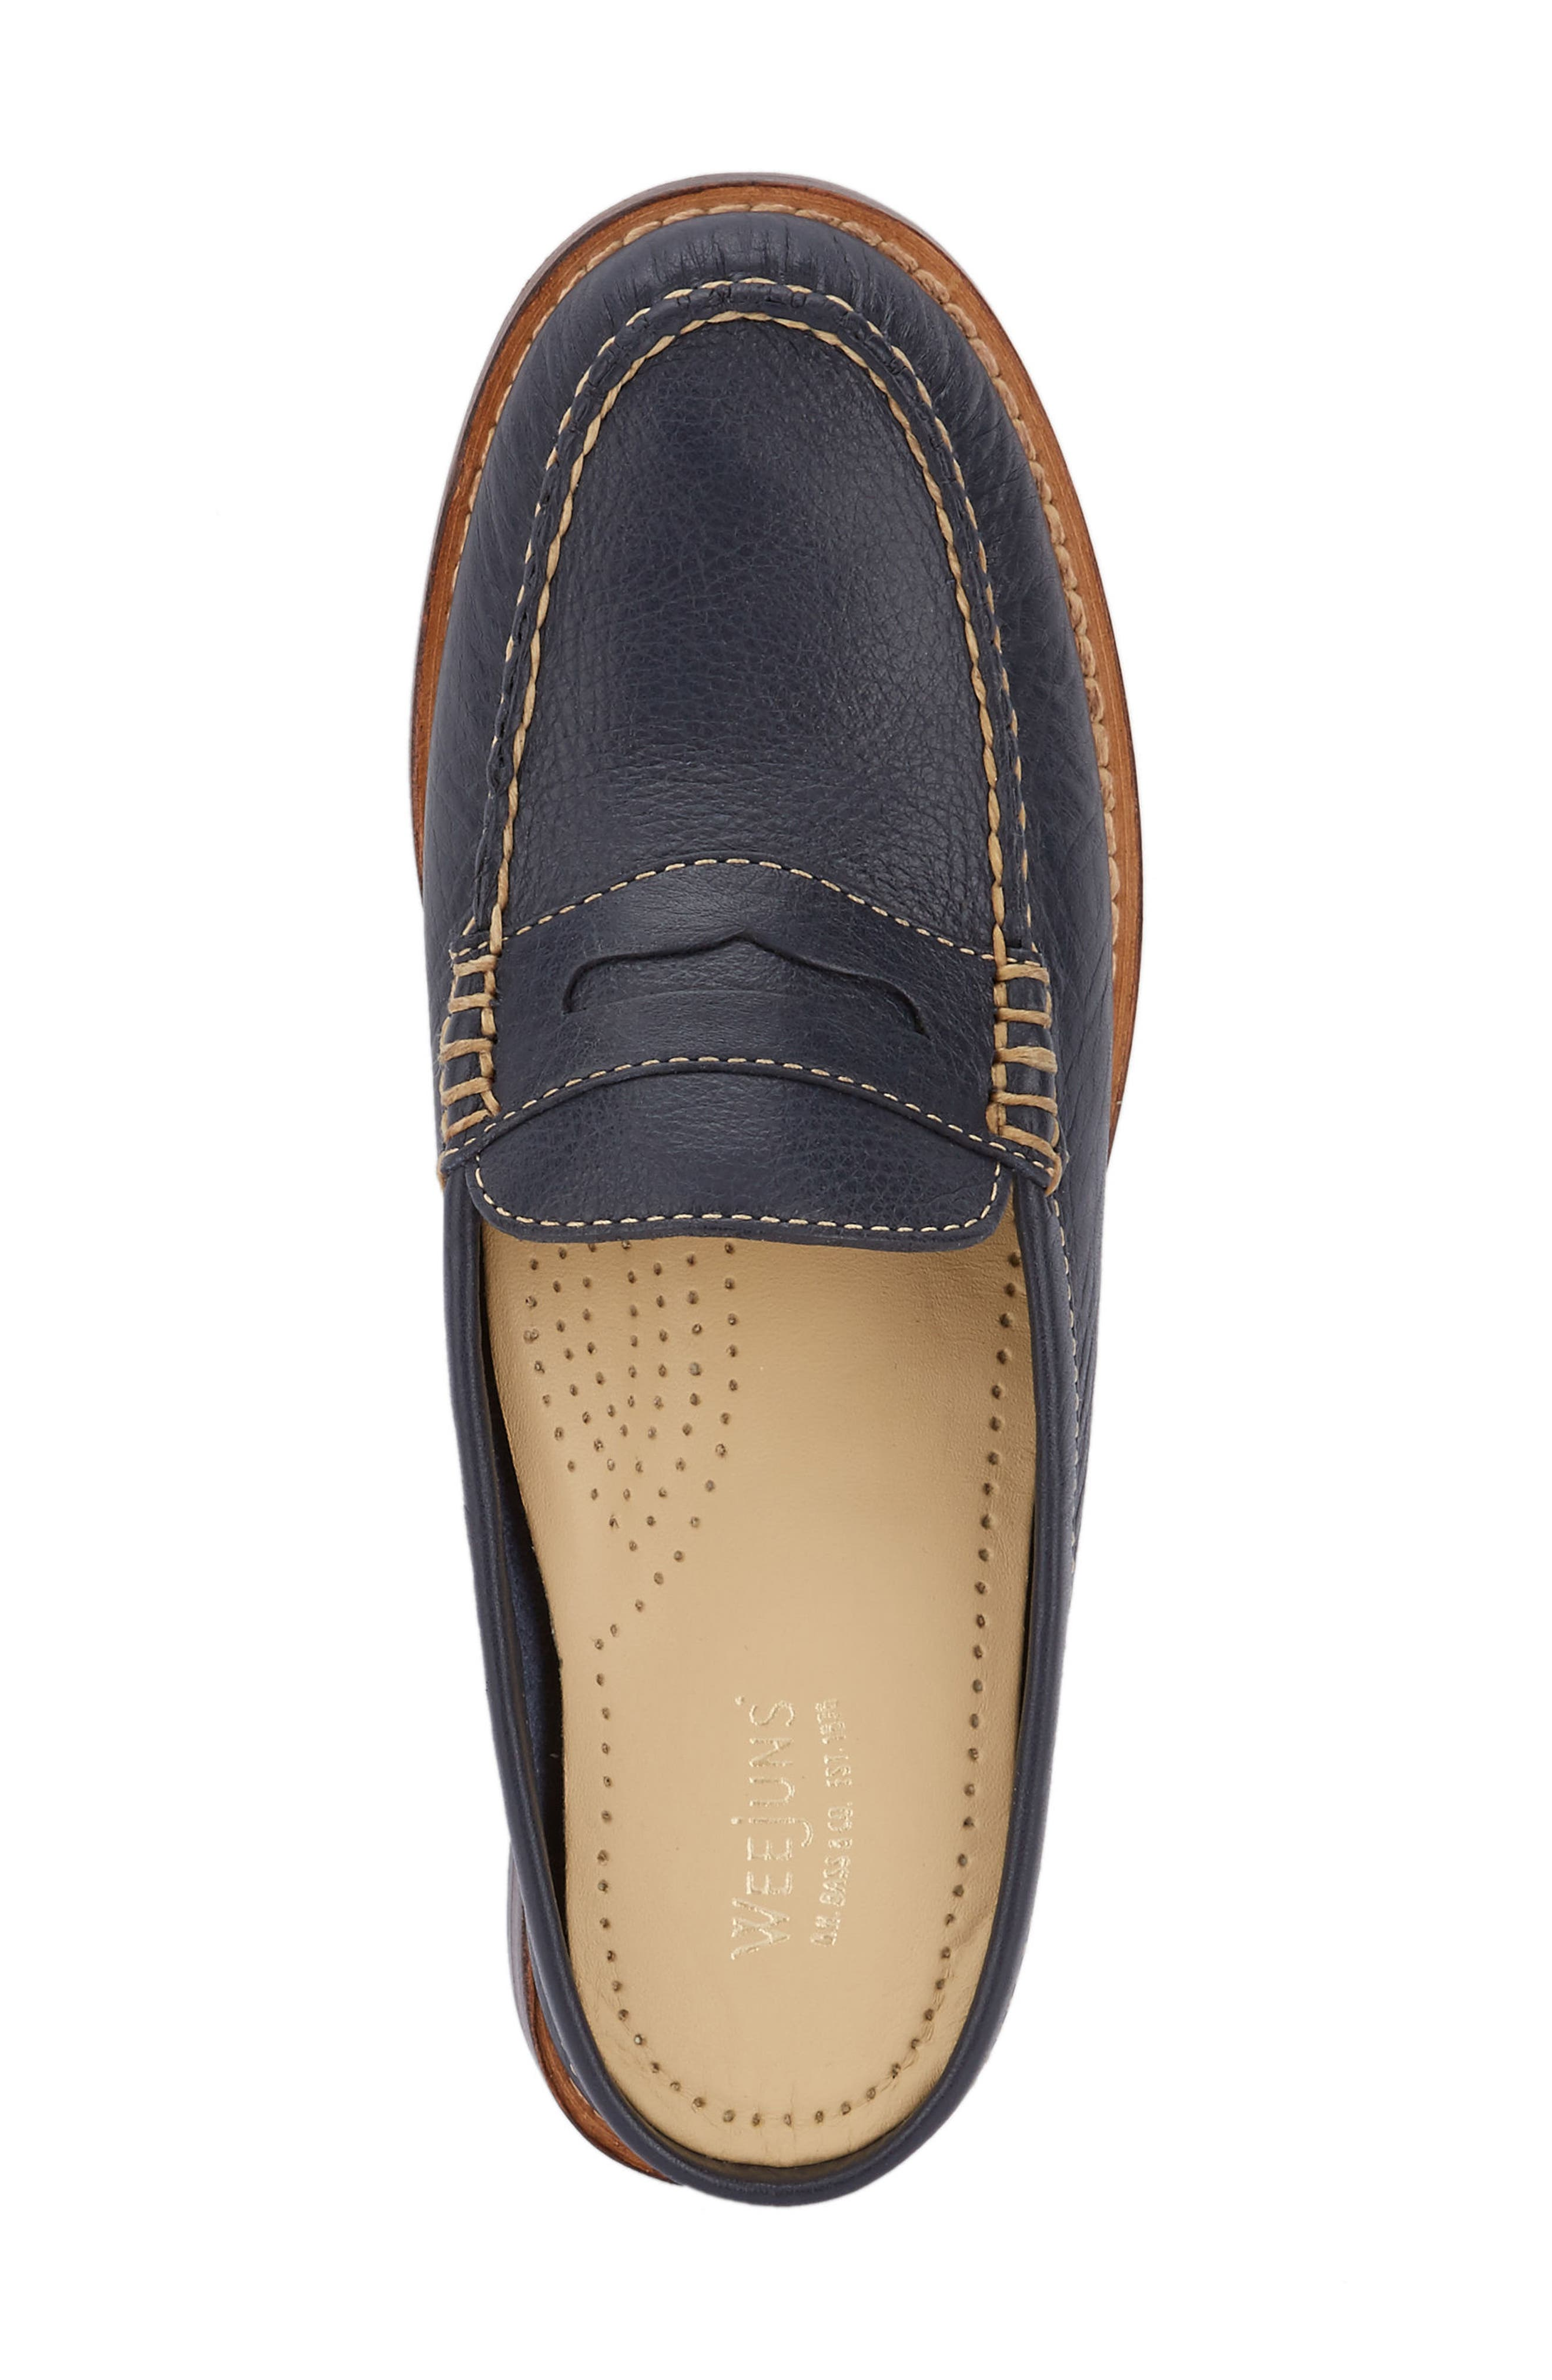 Wynn Loafer Mule,                             Alternate thumbnail 5, color,                             Navy Leather